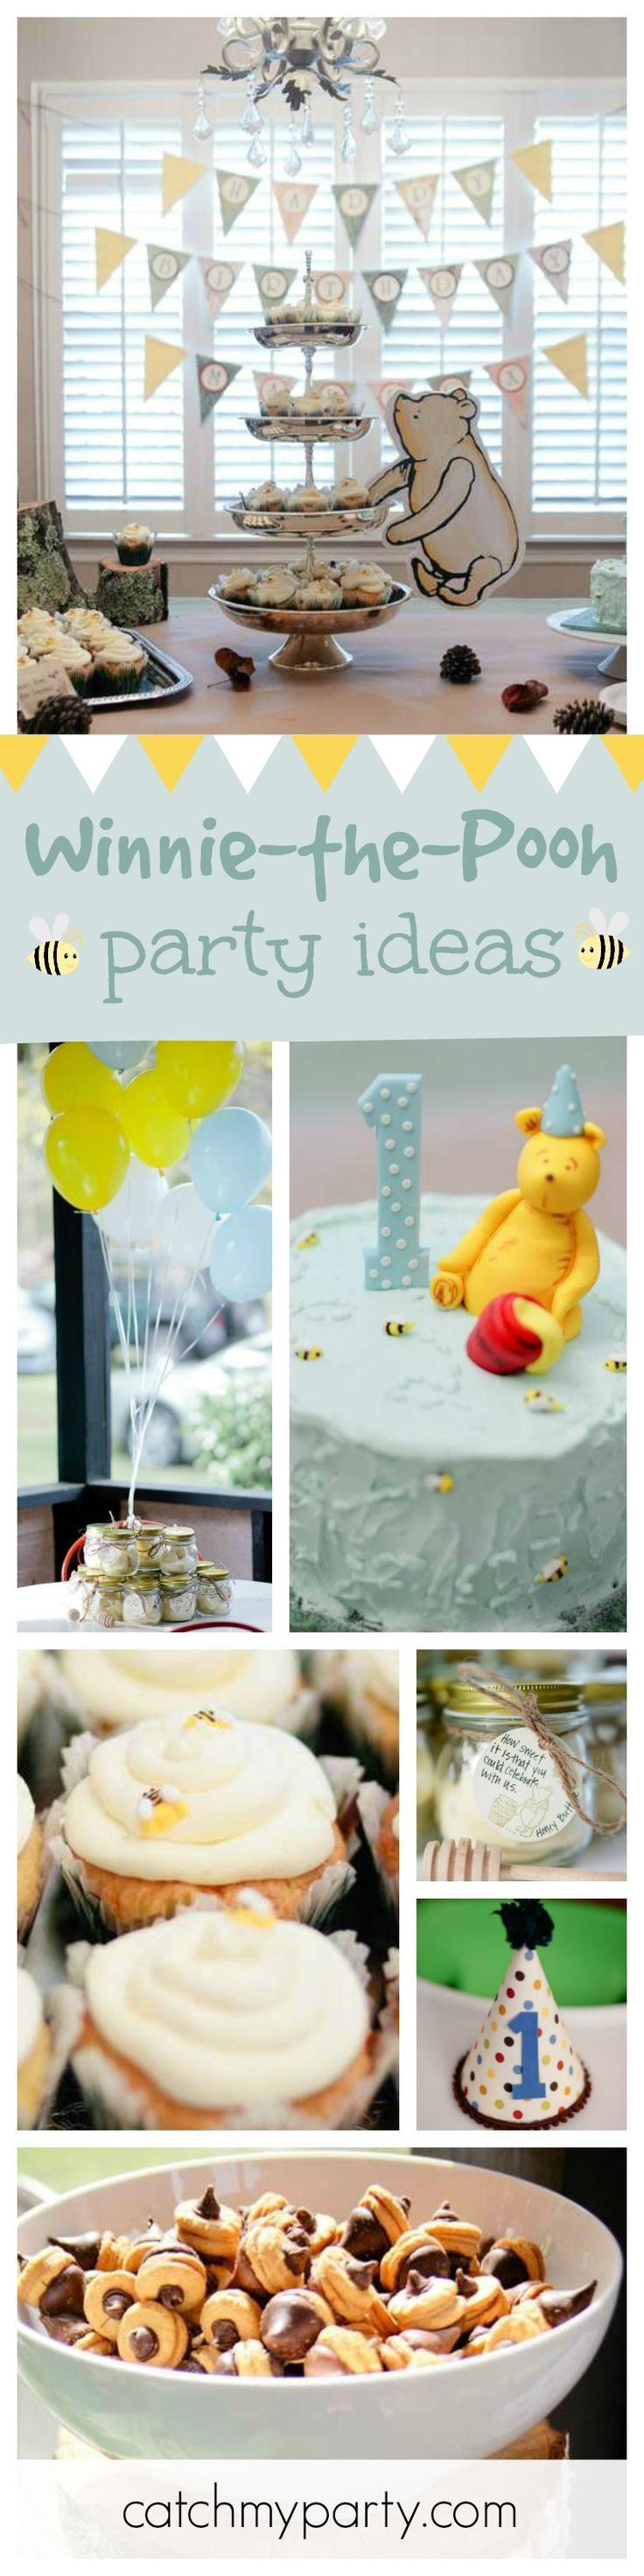 131 best whinnie the pooh party images on Pinterest | Parties kids ...